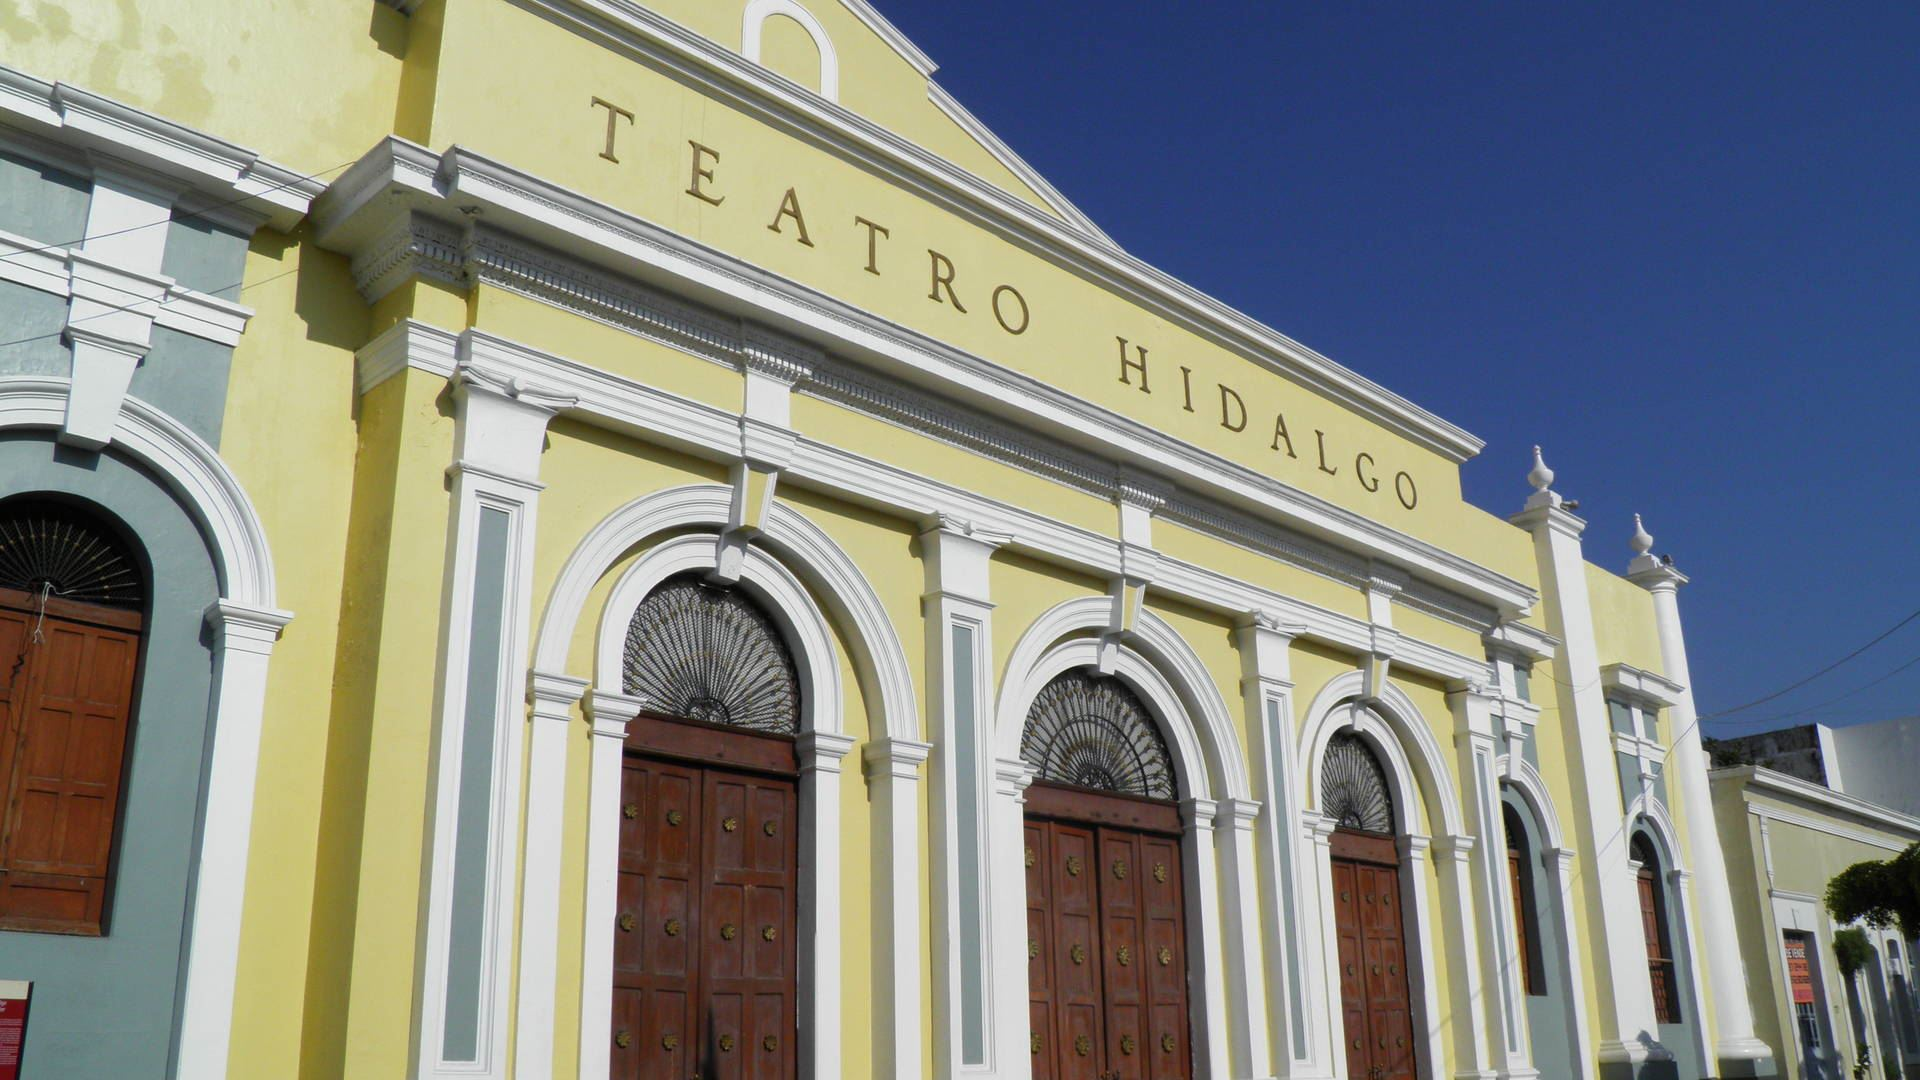 Hidalgo Theater